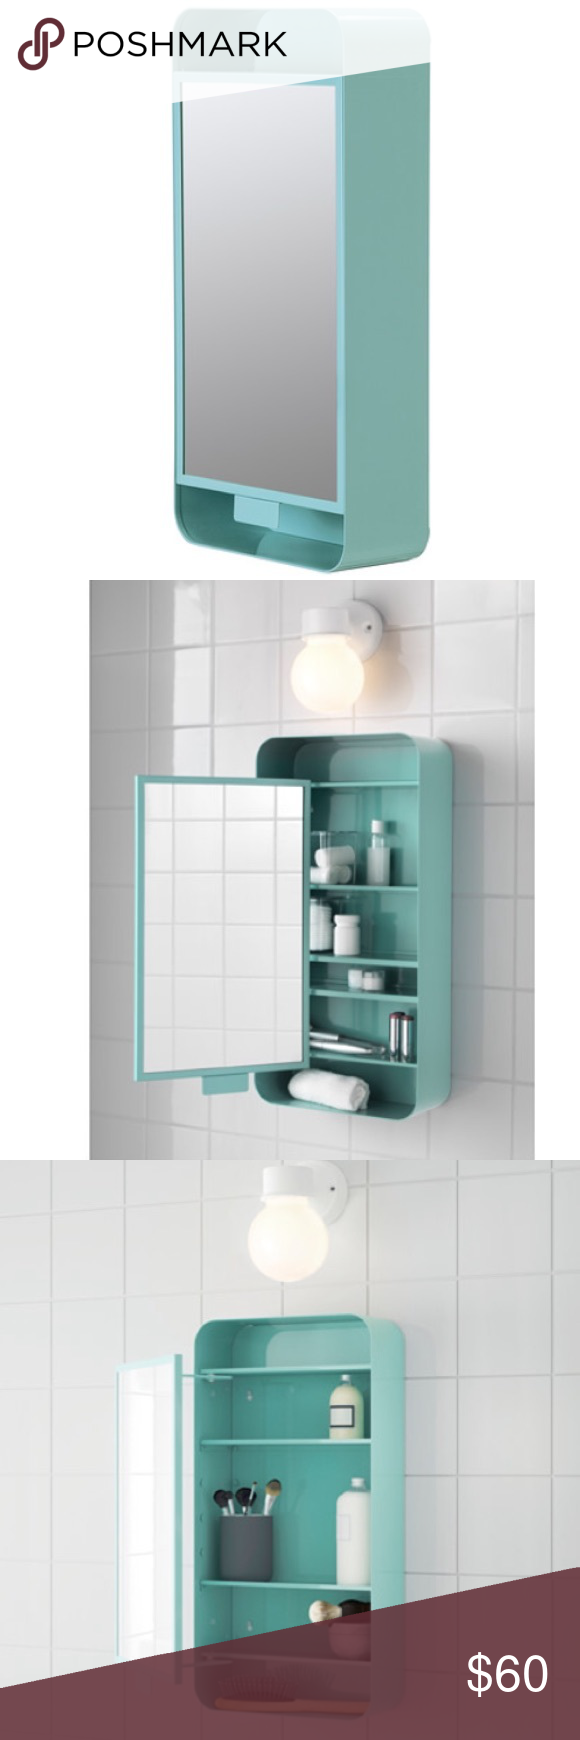 IKEA mirror cabinet Brand new. Never been opened, turquoise Other